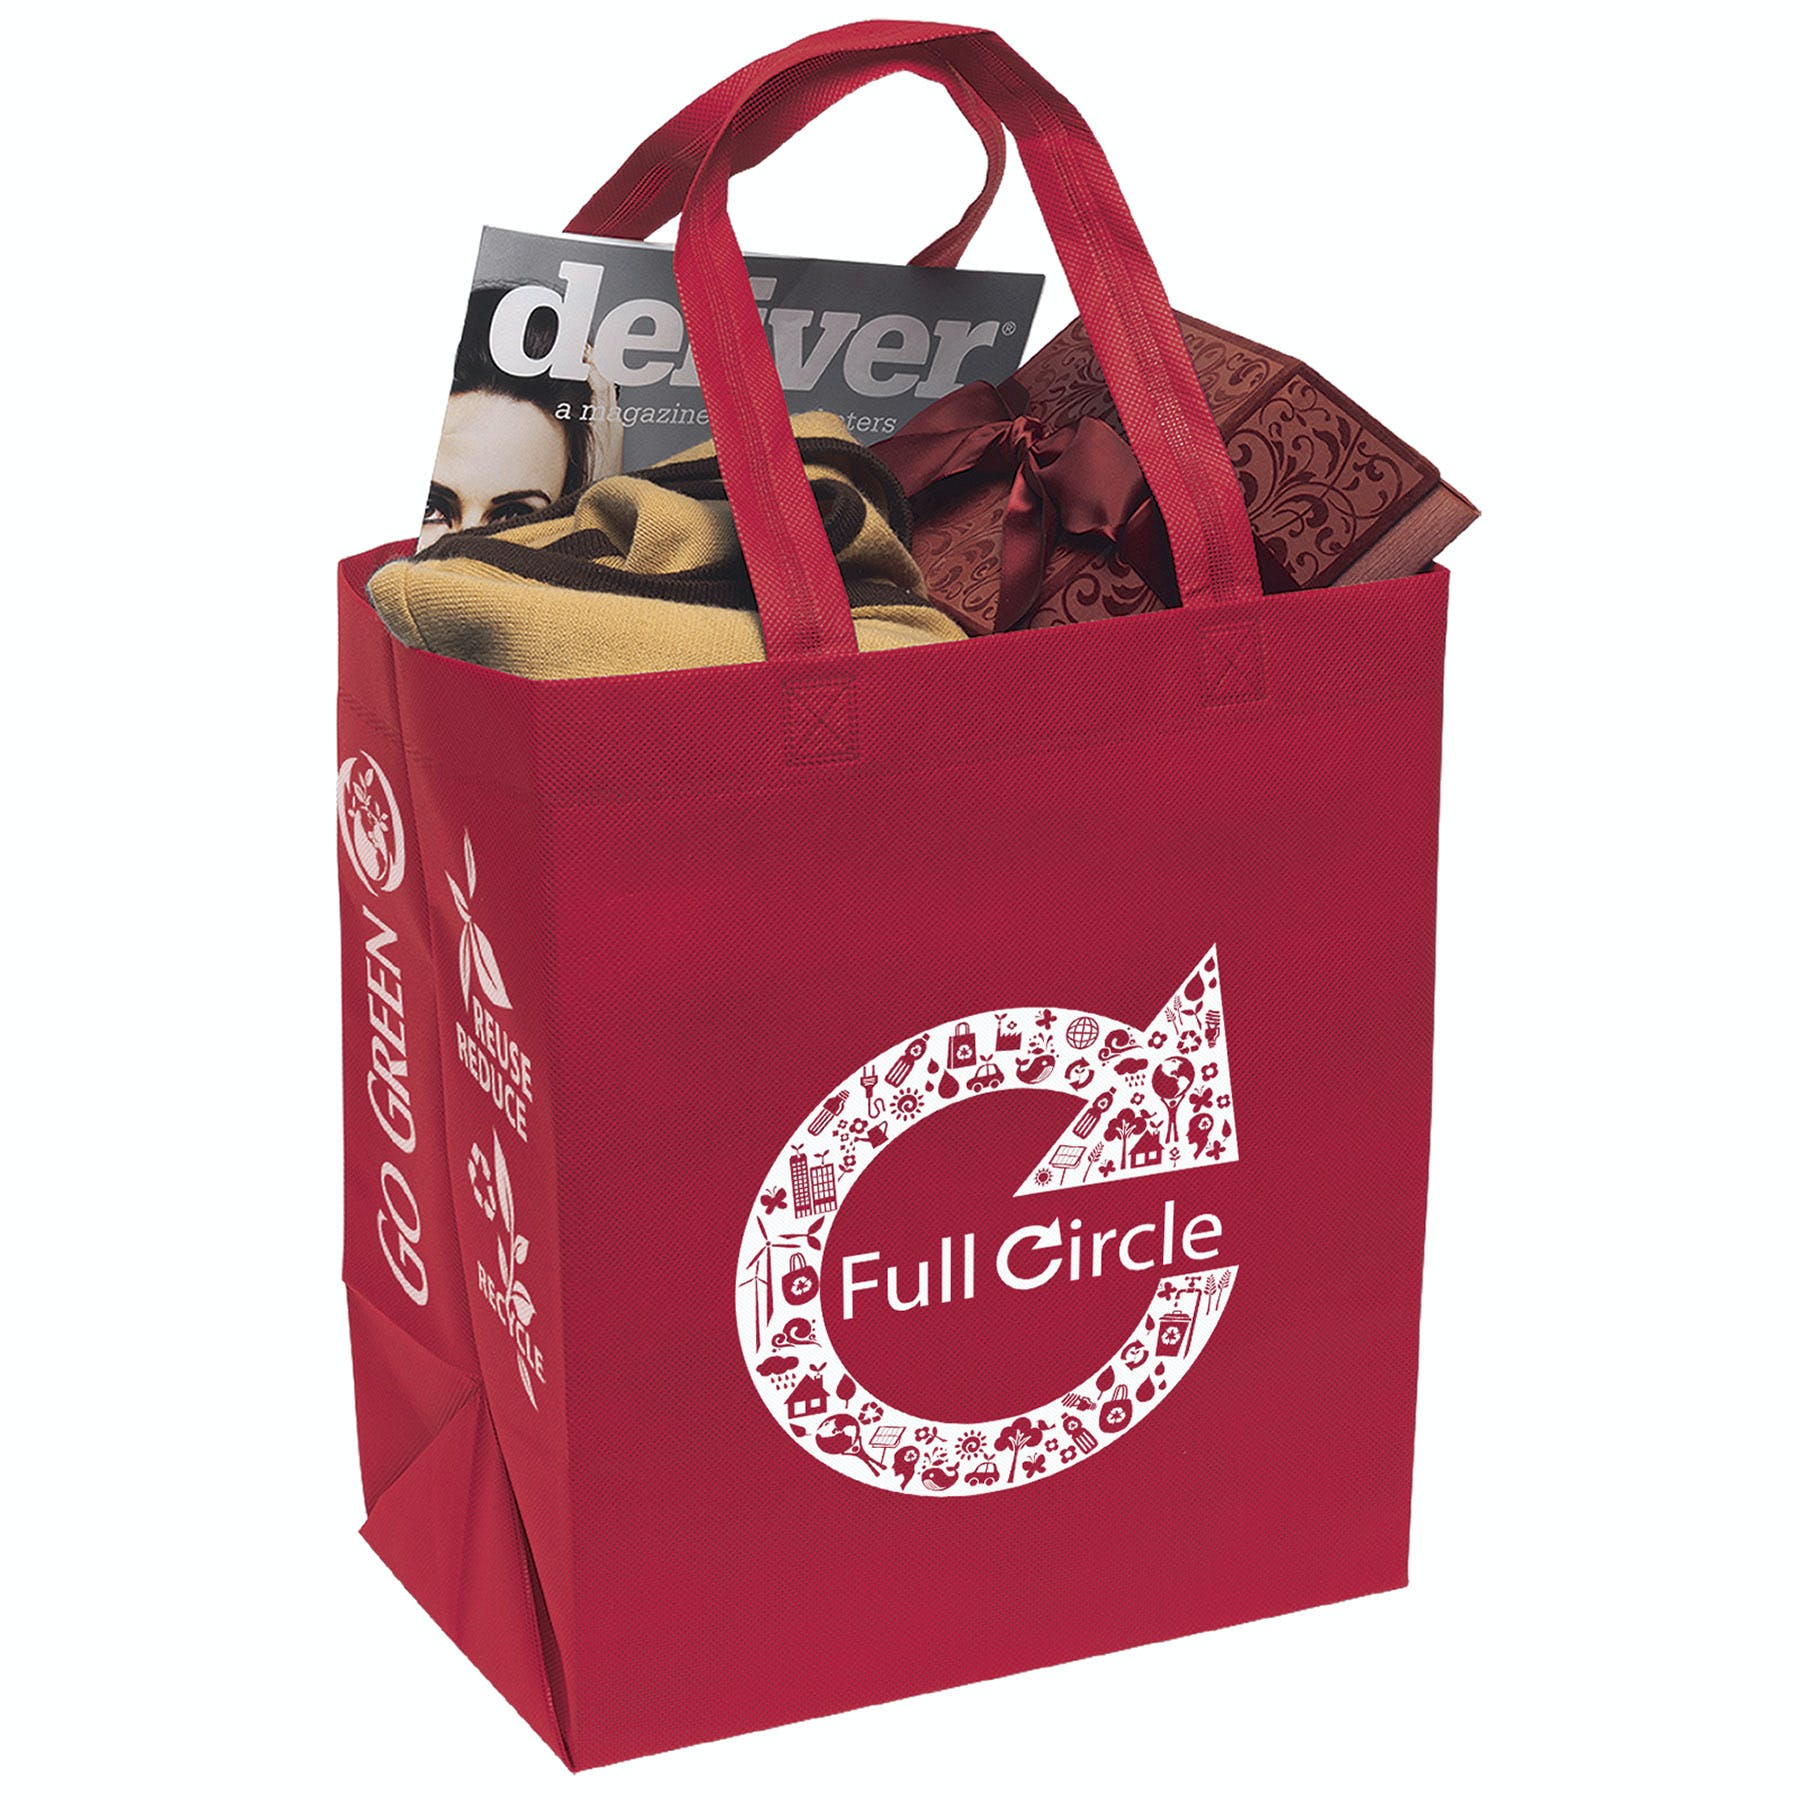 Economy Tote Bag (Item # WFIQP-HLDIA) Recycled and Eco Friendly Promotional Item sold by InkEasy